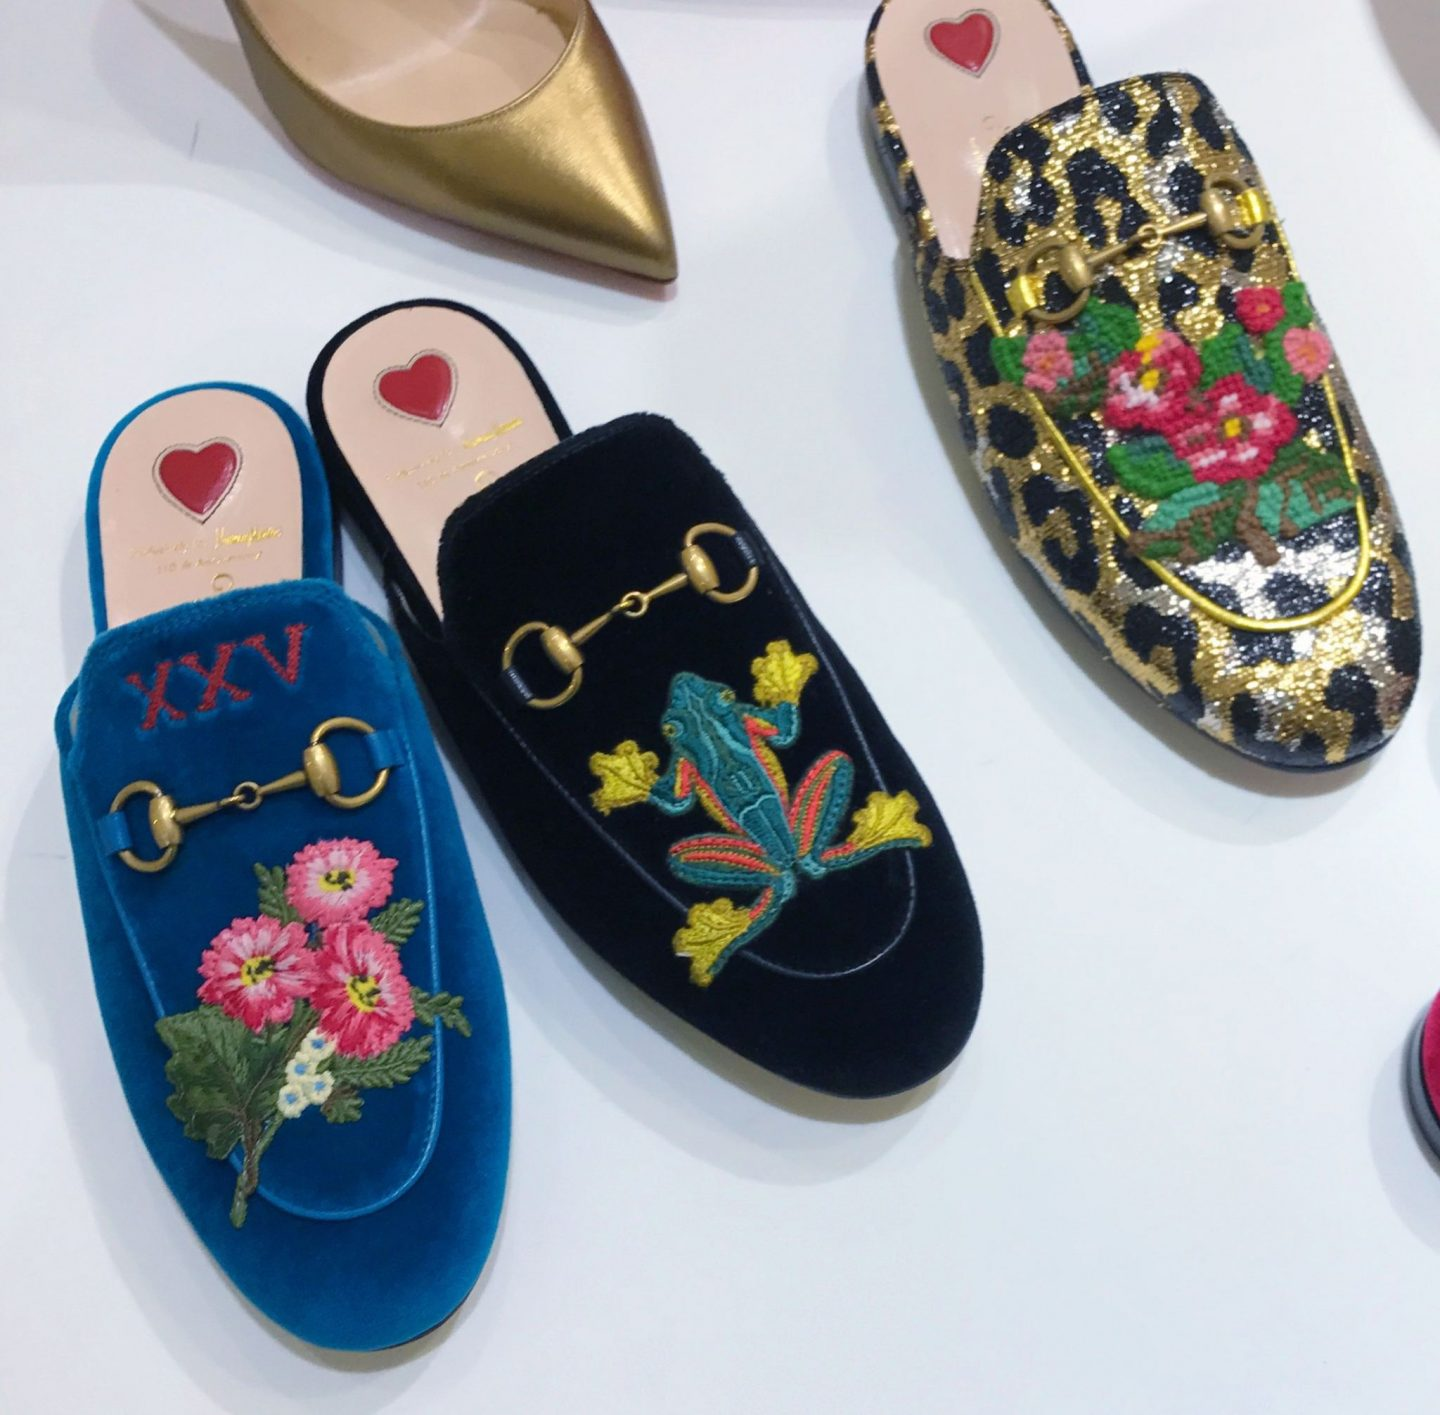 Gucci Sale New Collection Slippers